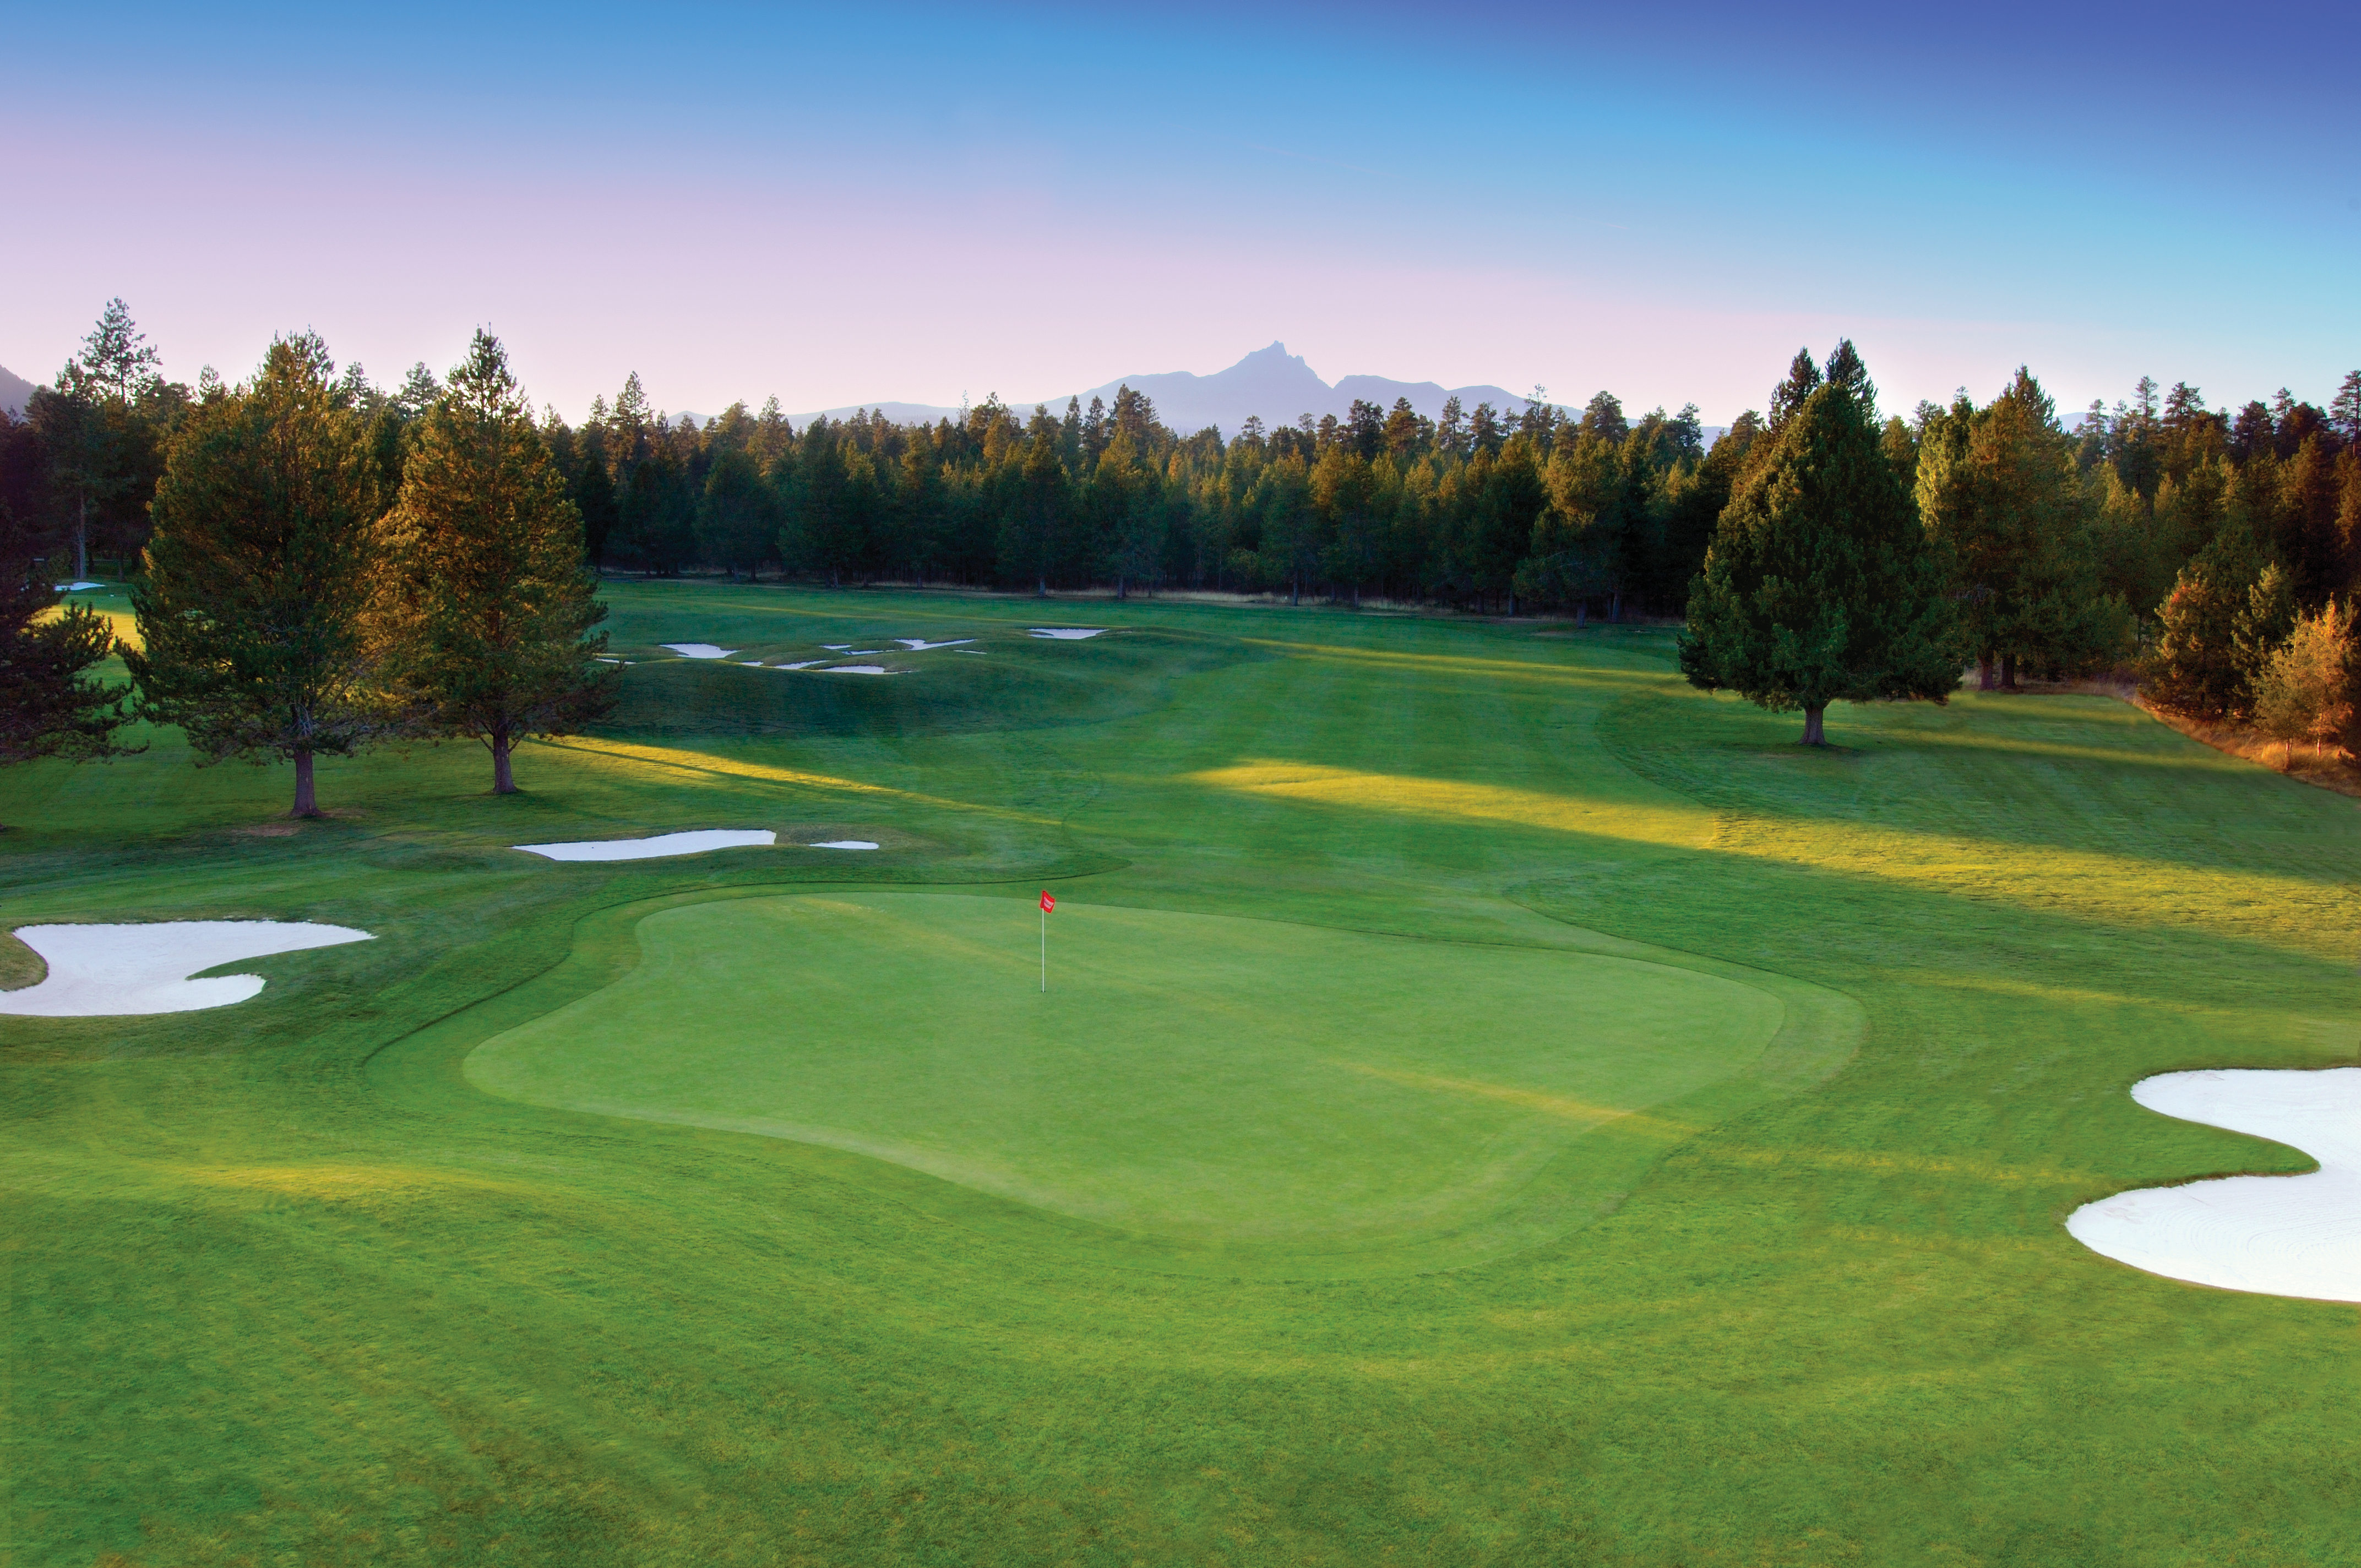 No. 9 at Black Butte Ranch's Big Meadow course